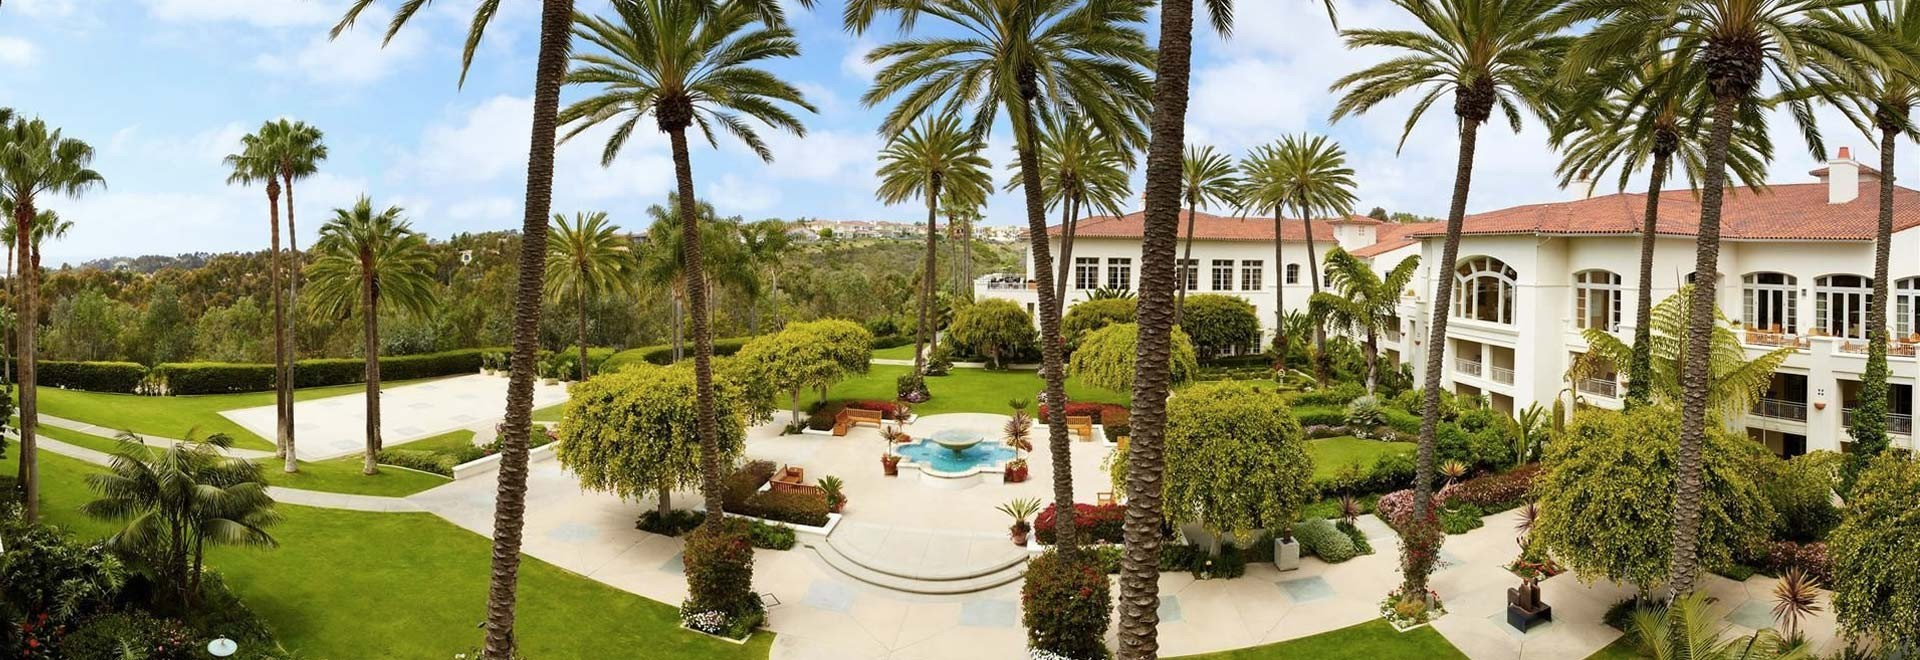 Park Hyatt Aviara Resort Golf Club & Spa, California - Book. Travel. Play.